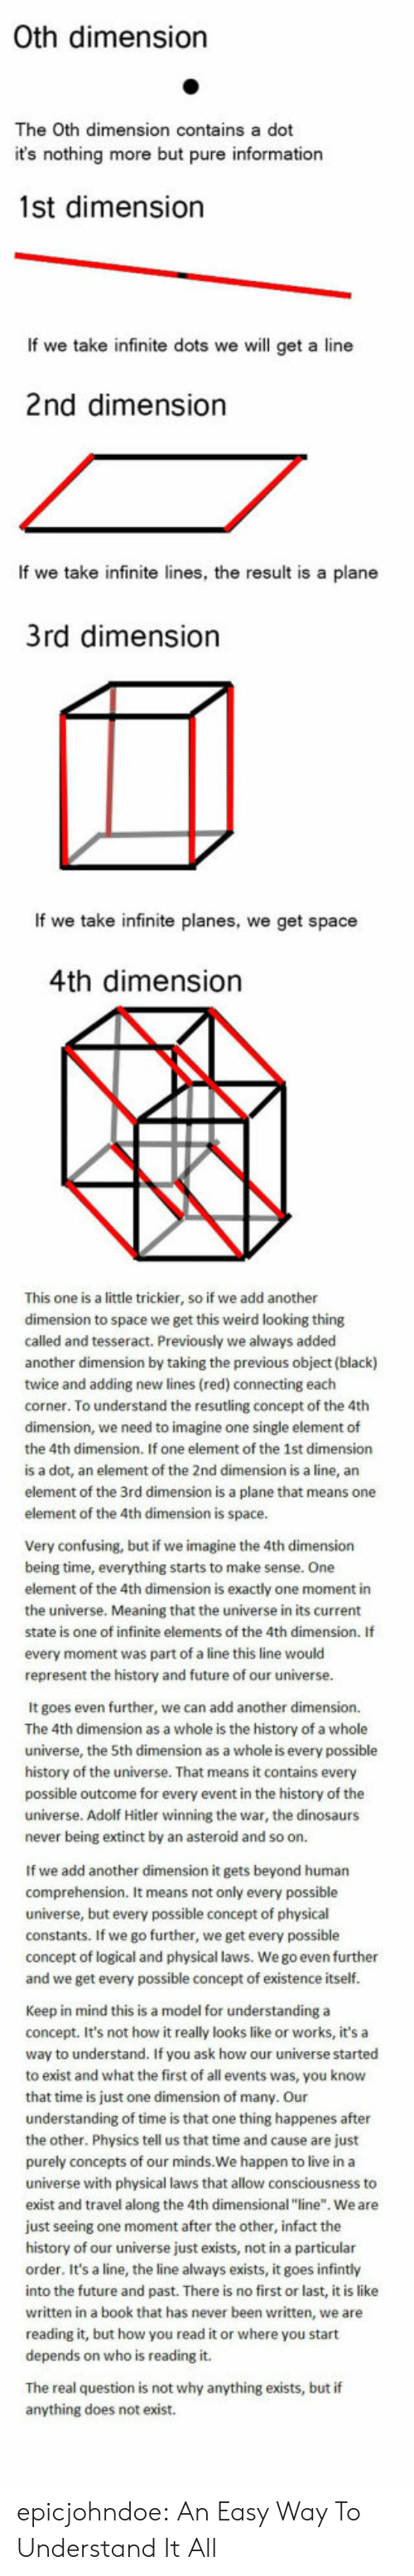 Happenes: Oth dimension  The Oth dimension contains a dot  it's nothing more but pure information  1st dimension  If we take infinite dots we will get a line  2nd dimension  If we take infinite lines, the result is a plane  3rd dimension  If we take infinite planes, we get space  4th dimension  This one is a little trickier, so if we add another  dimension to space we get this weird looking thing  called and tesseract. Previously we always added  another dimension by taking the previous object (black)  twice and adding new lines (red) connecting each  corner. To understand the resutling concept of the 4th  dimension, we need to imagine one single element of  the 4th dimension. If one element of the 1st dimension  is a dot, an element of the 2nd dimension is a line, an  element of the 3rd dimension is a plane that means one  element of the 4th dimension is space  Very confusing, but if we imagine the 4th dimension  being time, everything starts to make sense. One  element of the 4th dimension is exactly one moment in  the universe. Meaning that the universe in its current  state is one of infinite elements of the 4th dimension. If  every moment was part of a line this line would  represent the history and future of our universe  It goes even further, we can add another dimension.  The 4th dimension as a whole is the history of a whole  universe, the 5th dimension as a whole is every possible  history of the universe. That means it contains every  possible outcome for every event in the history of the  universe. Adolf Hitler winning the war, the dinosaurs  never being extinct by an asteroid and so on.  If we add another dimension it gets beyond human  comprehension. It means not only every possible  universe, but every possible concept of physical  constants. If we go further, we get every possible  concept of logical and physical laws. We go even further  and we get every possible concept of existence itseltf  Keep in mind this is a model for understanding a  concept